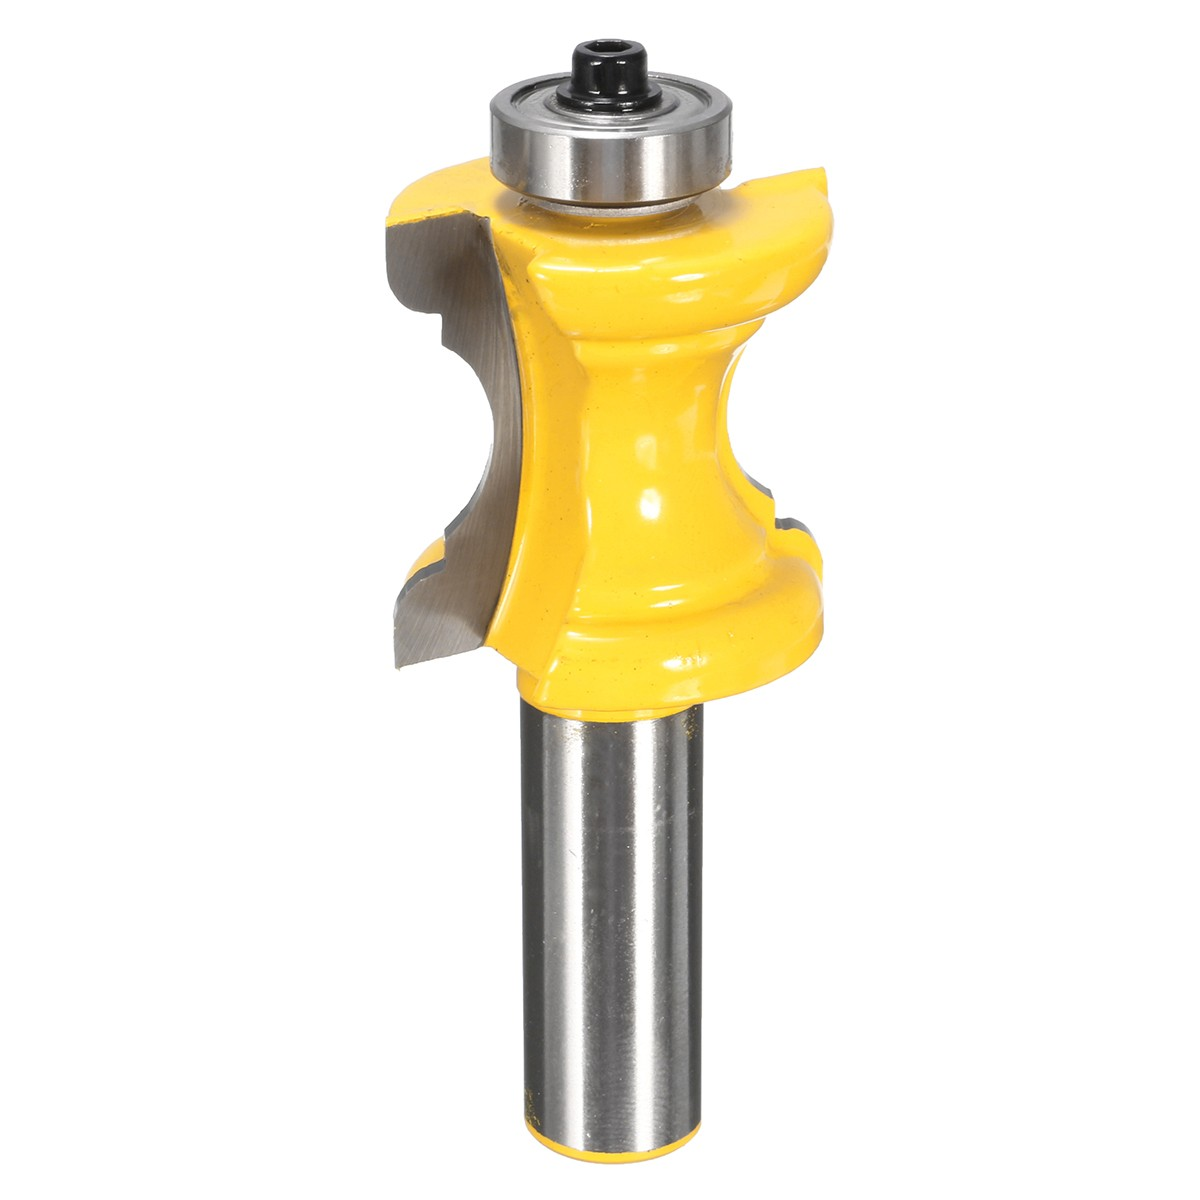 High Quality 1PC Bullnose with Bead Column/Face Molding Router Bit - 1/2 Shank - Yonico 13101 for Woodworking Tools 1 2 shank bullnose bead column face molding router bit alloy woodworking cutter for wood milling machines power tool